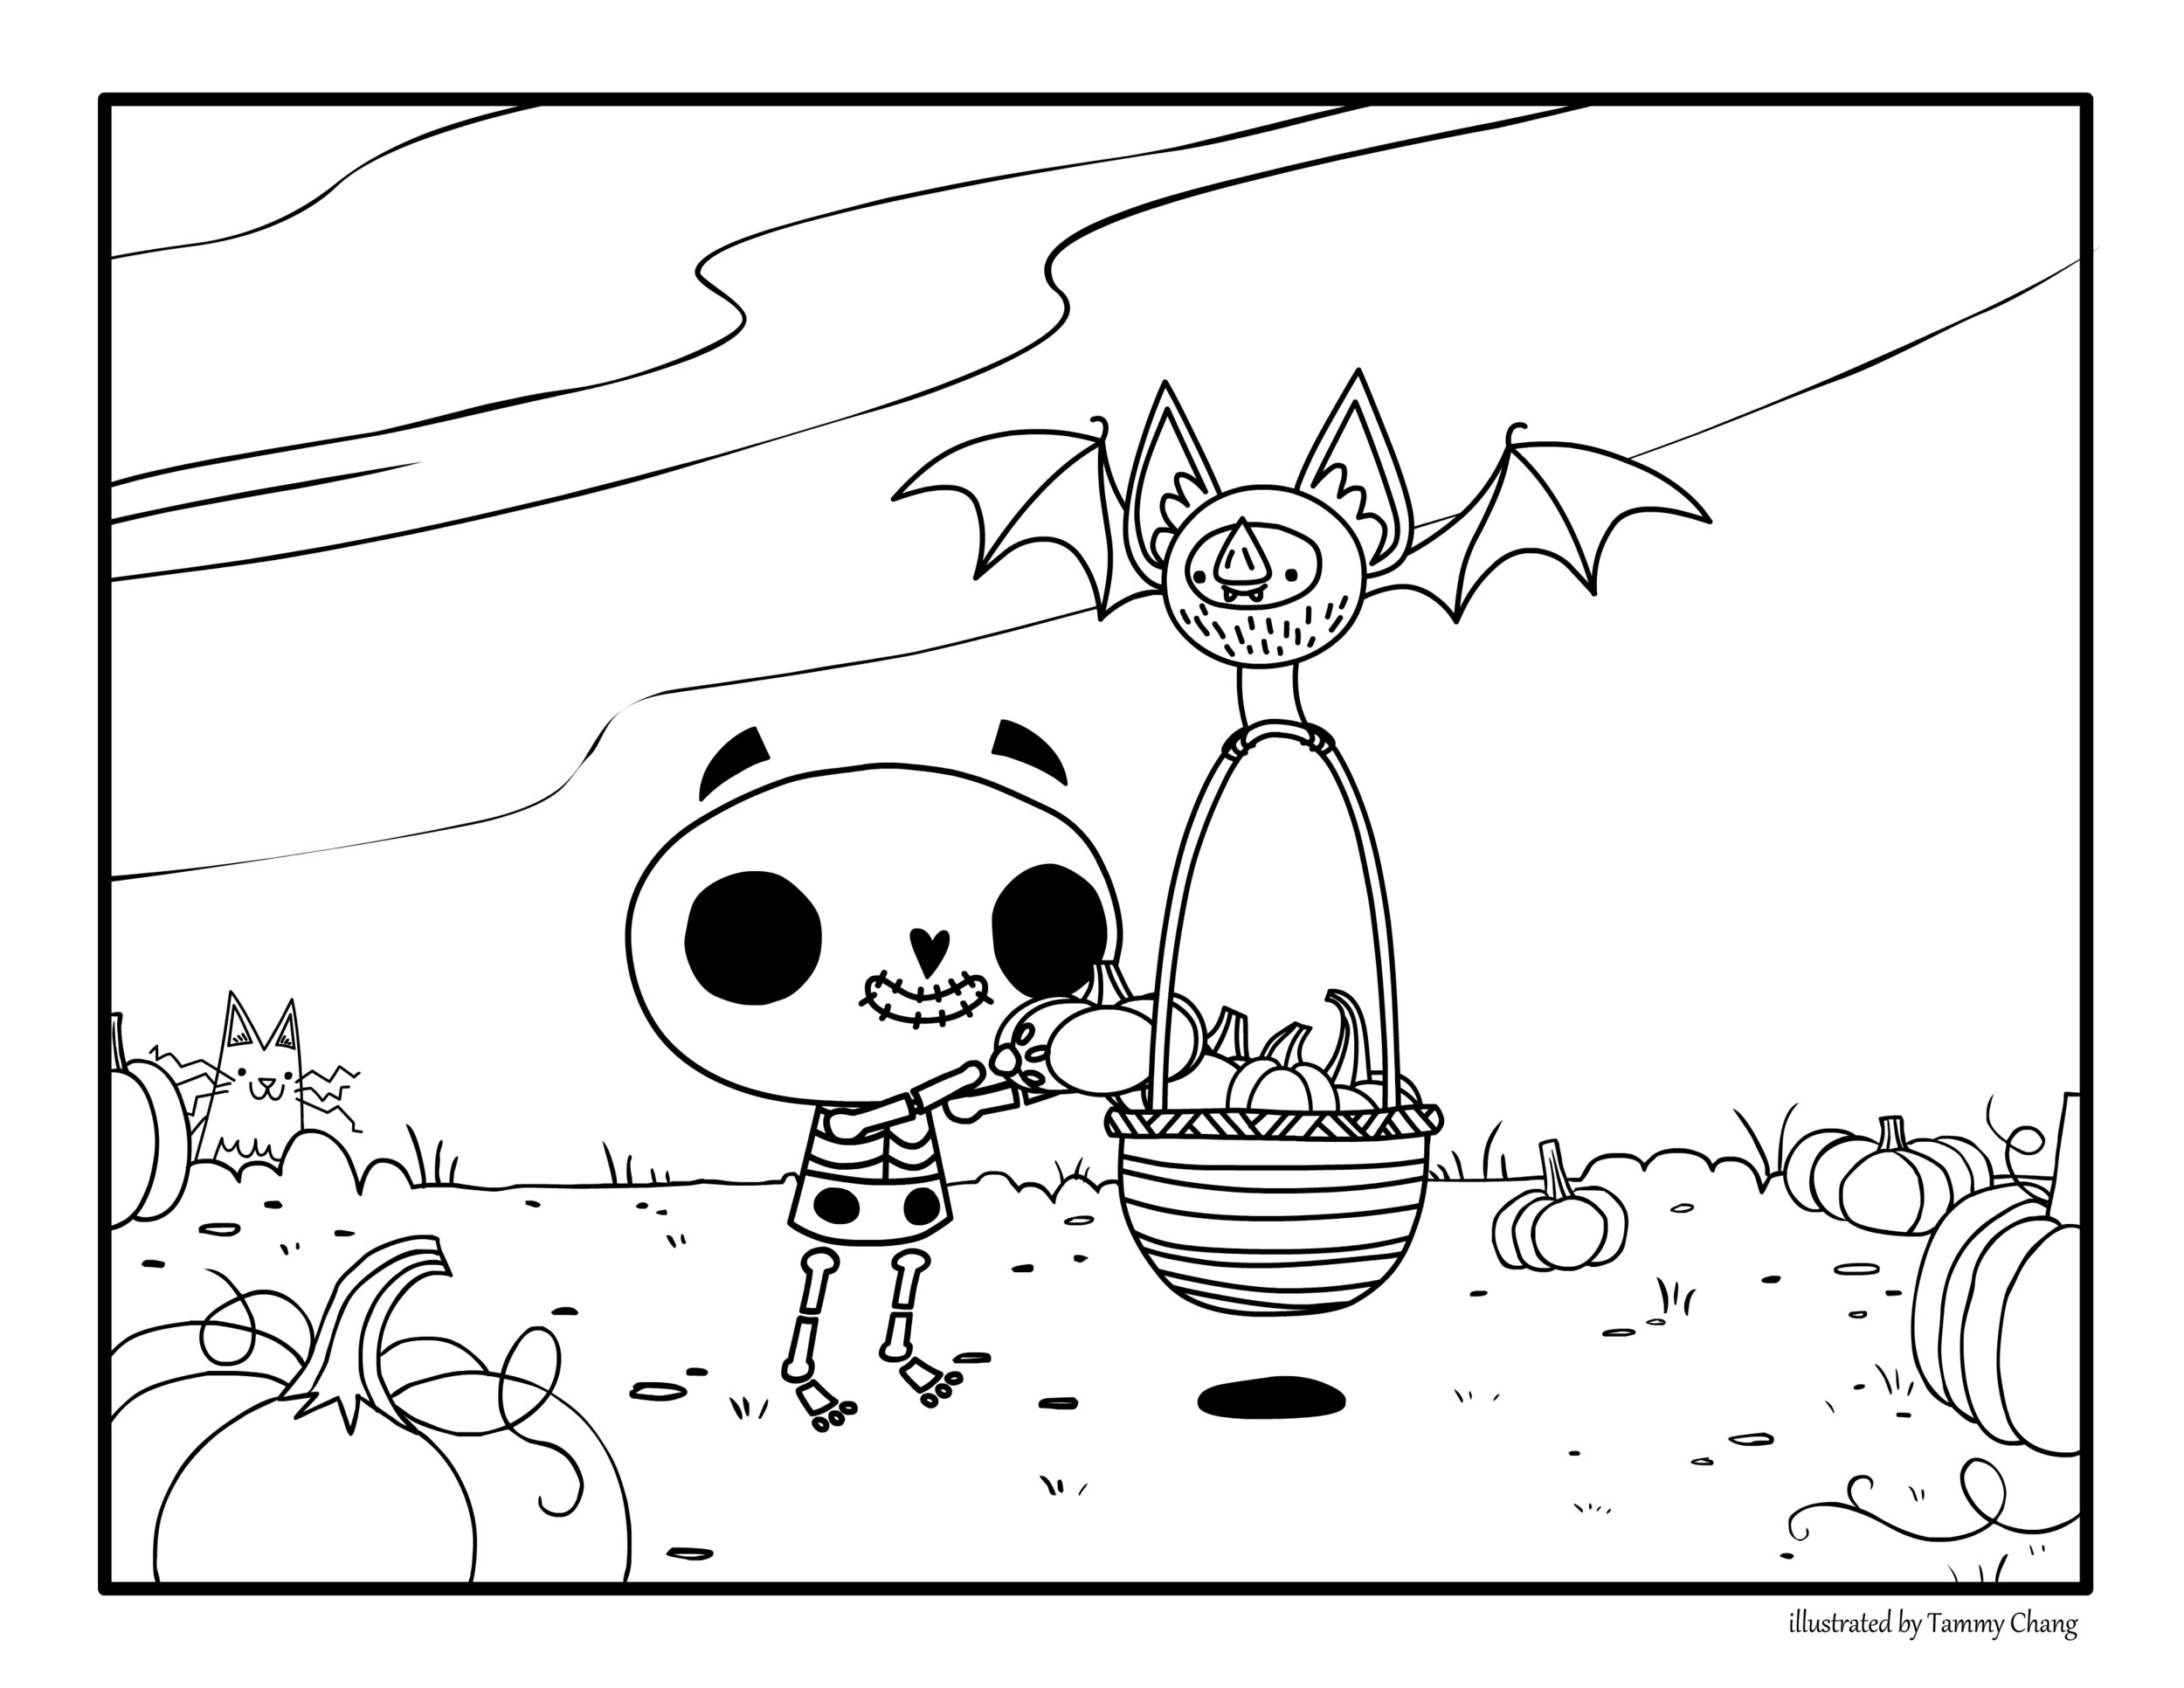 coloring_Page_04.png